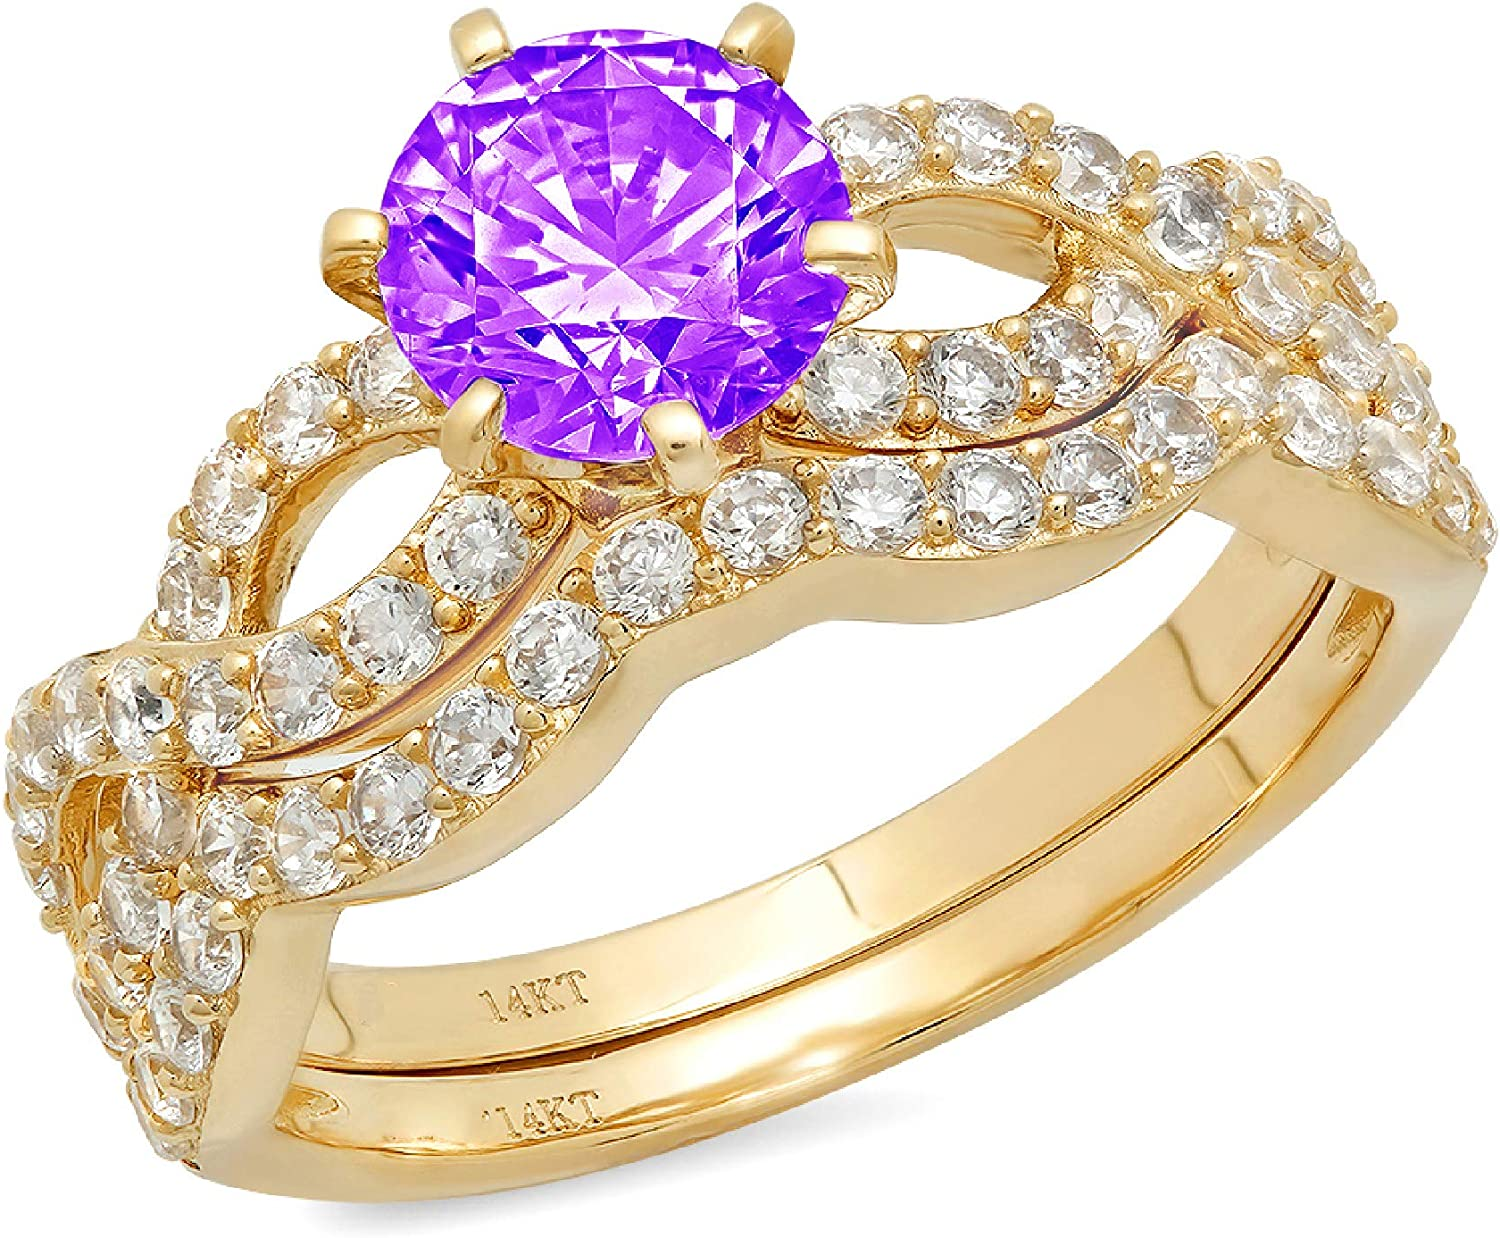 1.49ct Round Cut Halo Pave Solitaire Split Shank Accent VVS1 Ideal Natural Purple Amethyst Engagement Promise Designer Anniversary Wedding Bridal Ring band set Curved 14k Yellow Gold